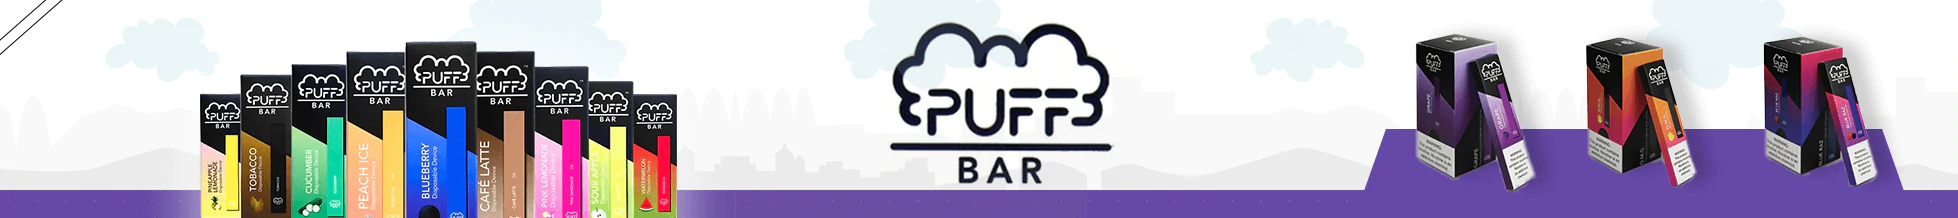 How to Make Your Puff Bar Last Longer?